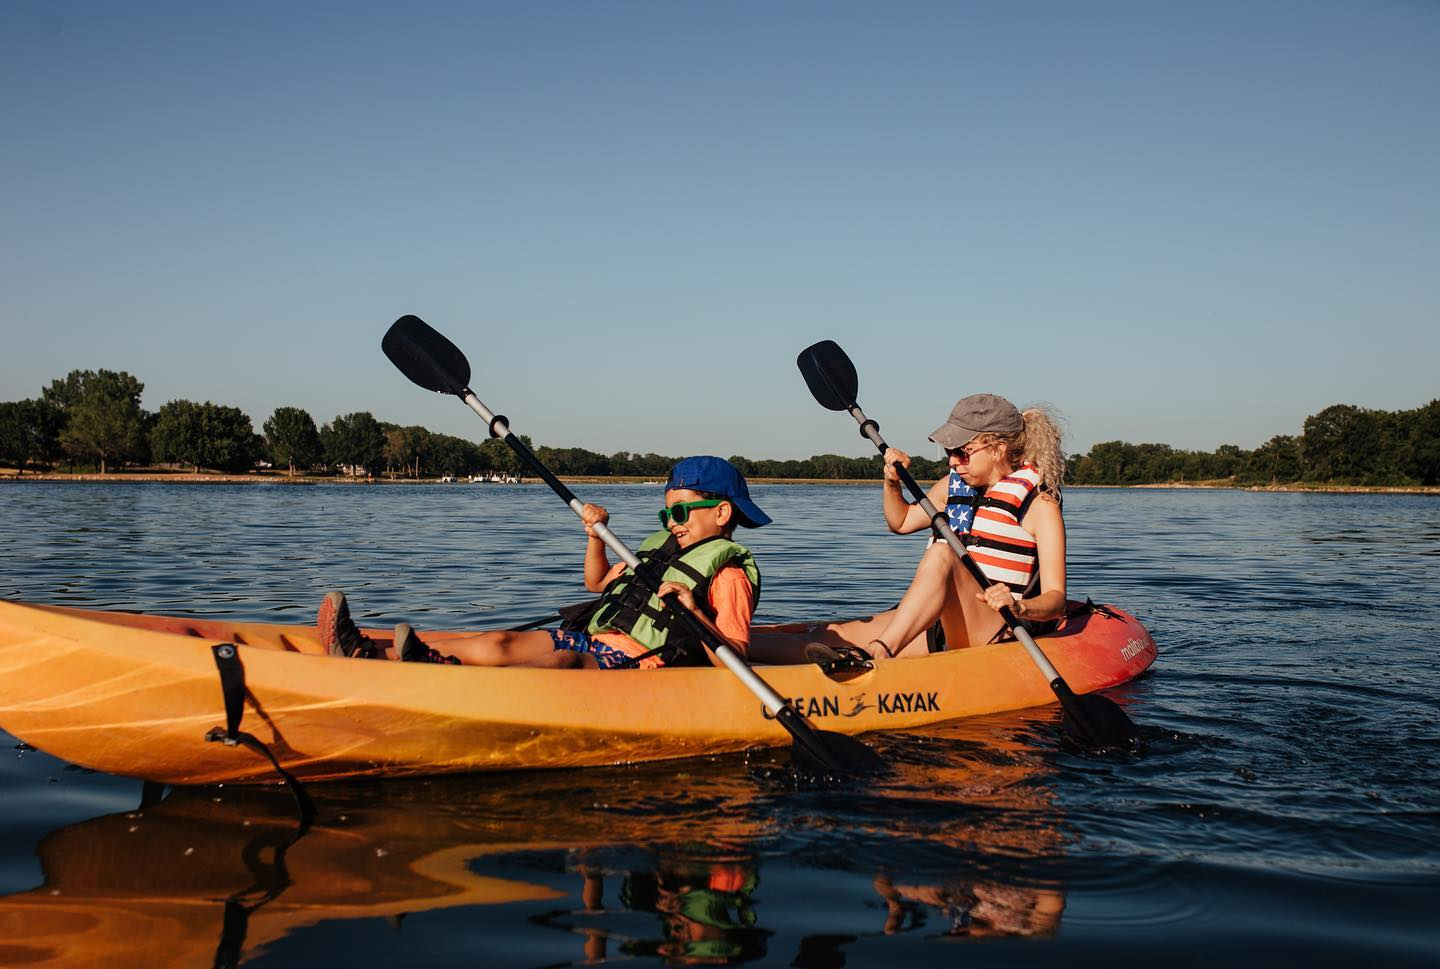 Kayaking with the Family